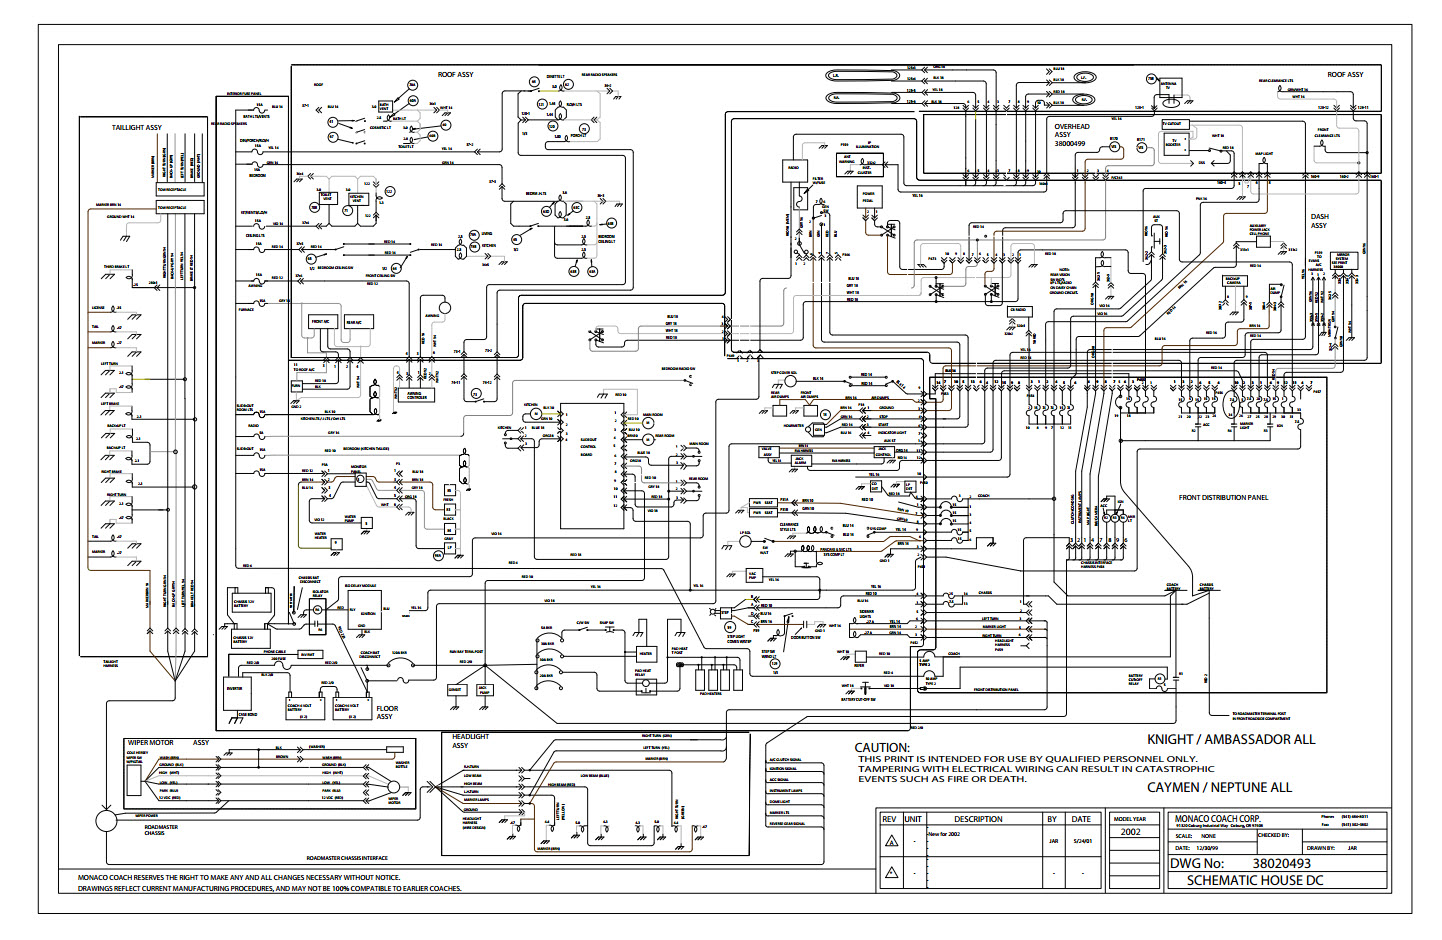 Monaco Wiring Schematics | Online Wiring Diagram on sunnybrook rv wiring diagrams, monaco wiring diagram 2007, monaco coach wiring diagrams, monaco motorhomes wiring dashboard, monaco rv brochures, monaco dynasty wiring-diagram, dodge rv manuals diagrams, coachmen rv wiring diagrams, rv cooling unit diagrams, monaco rv parts, monaco electrical diagrams, monaco rv floor plans, monaco windsor wiring diagrams, monaco rv air conditioning, forest river rv wiring diagrams,